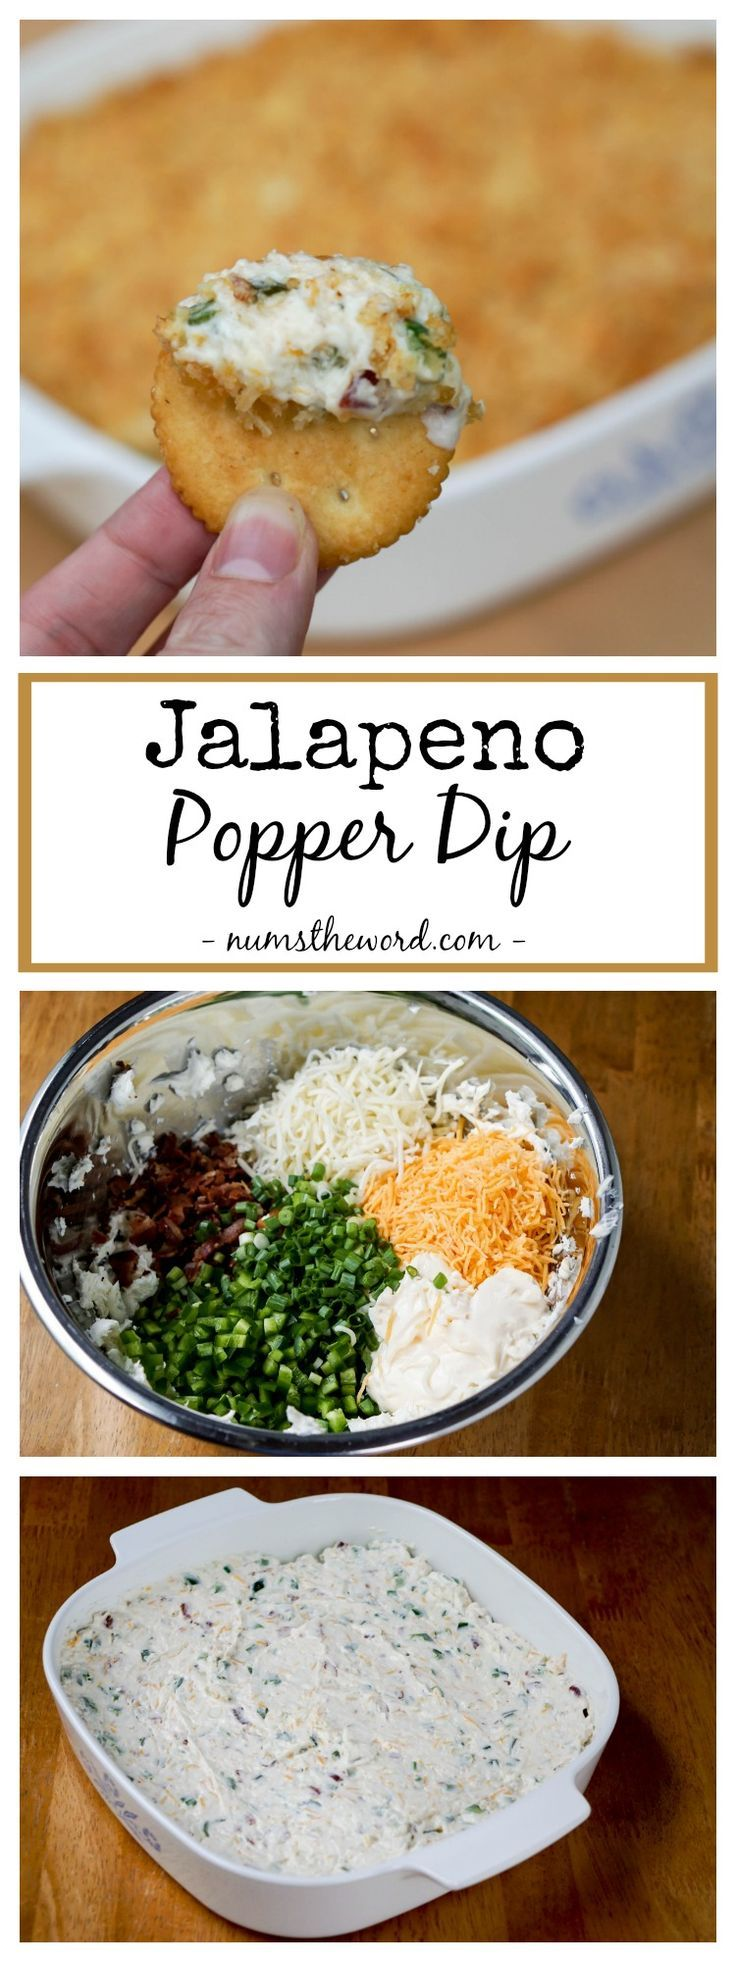 Jalapeno Popper Dip – This hot, but not spicy, dip make a great party dip.   Perfect appetizer for bridal showers, baby showers, football games, tailgating and game night.  An easy appetizer anyone can make! (Potluck Recipes Easy)